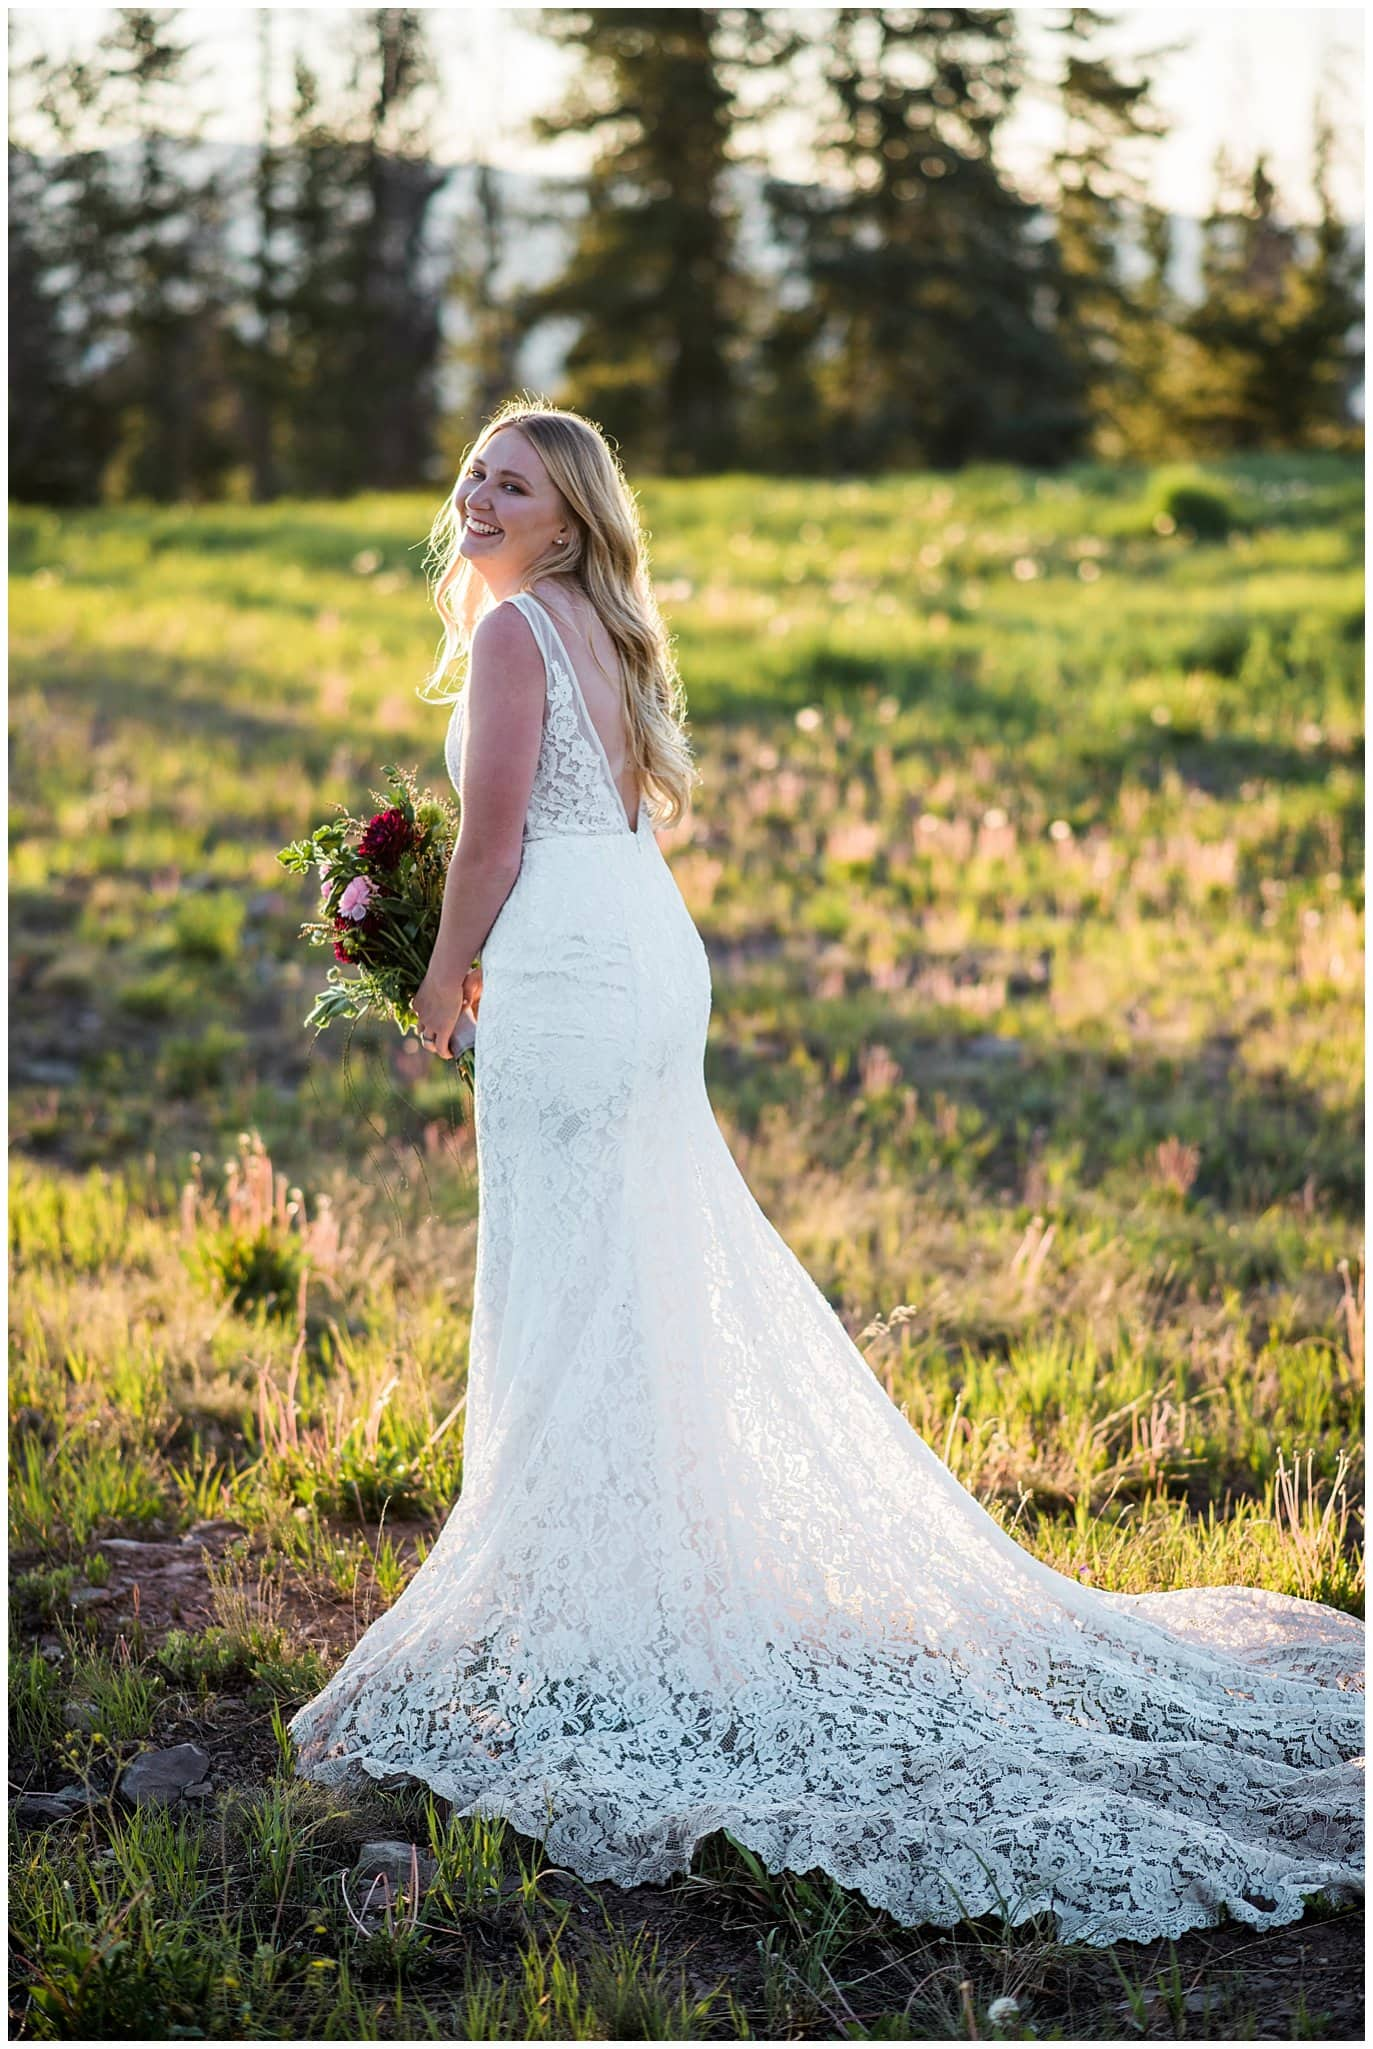 Made With Love Bridal lace wedding dress at sunset